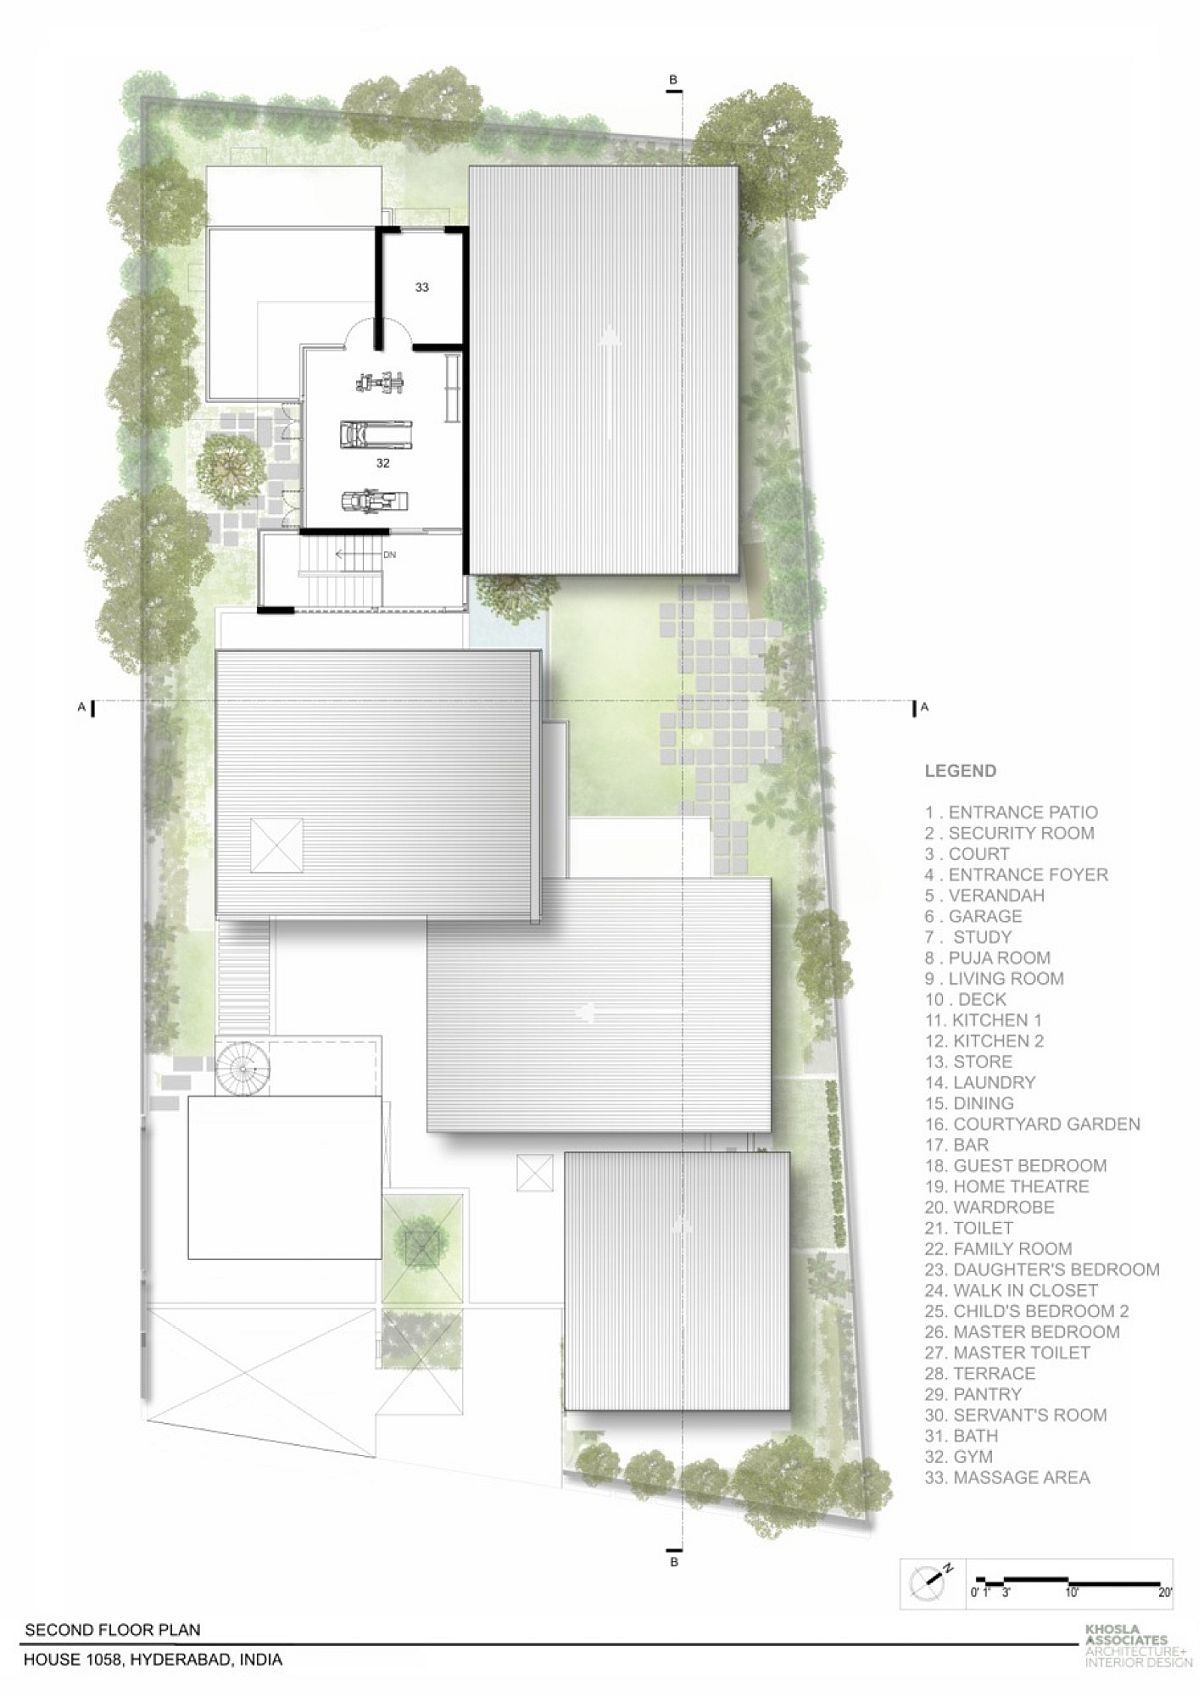 Terrace floor plan of modern house in India